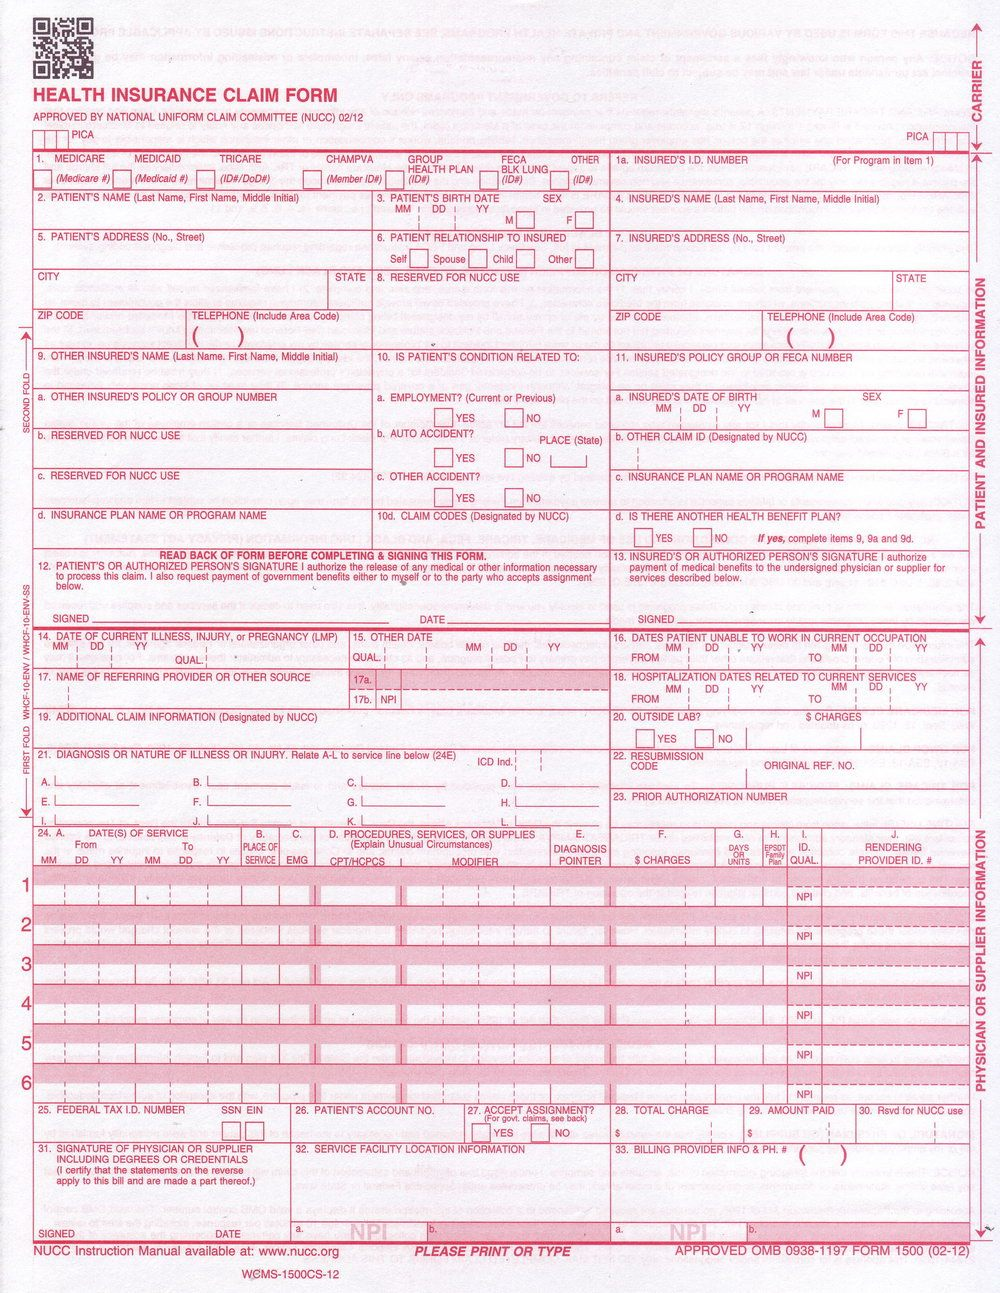 Completed Cms 1500 Claim Form Sample